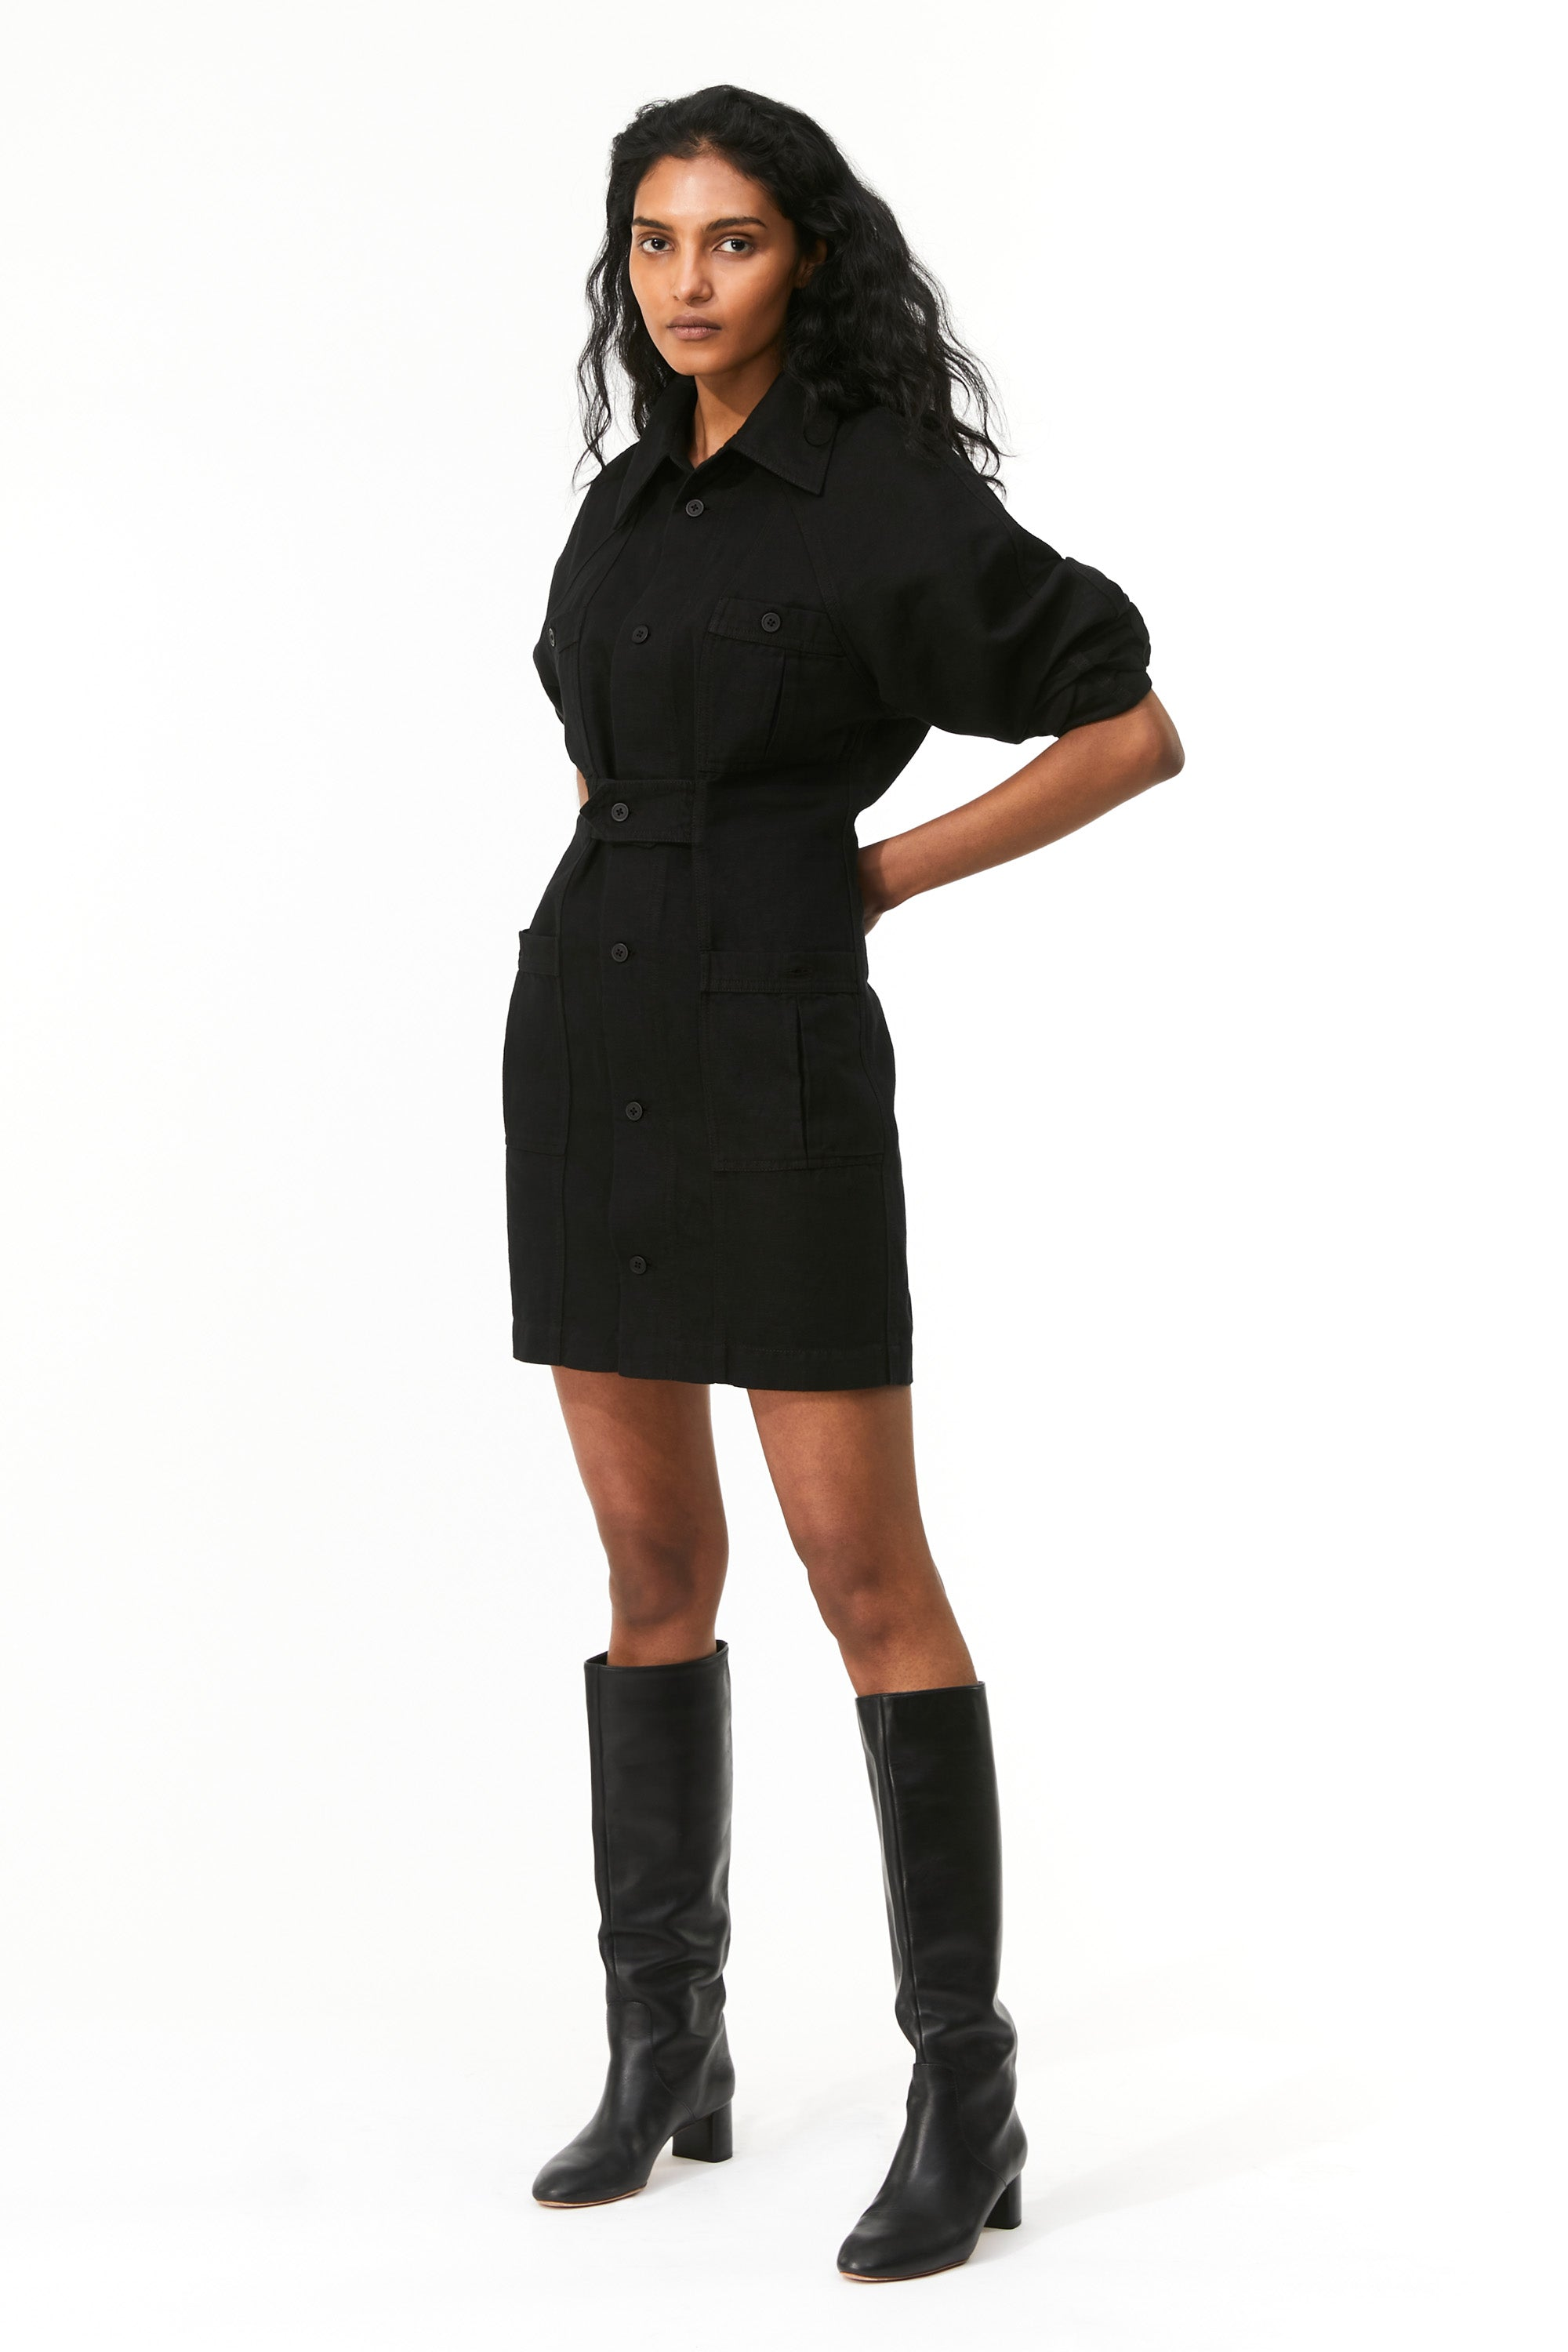 Mara Hoffman Black Ino Dress in overdyed linen and organic cotton (front)